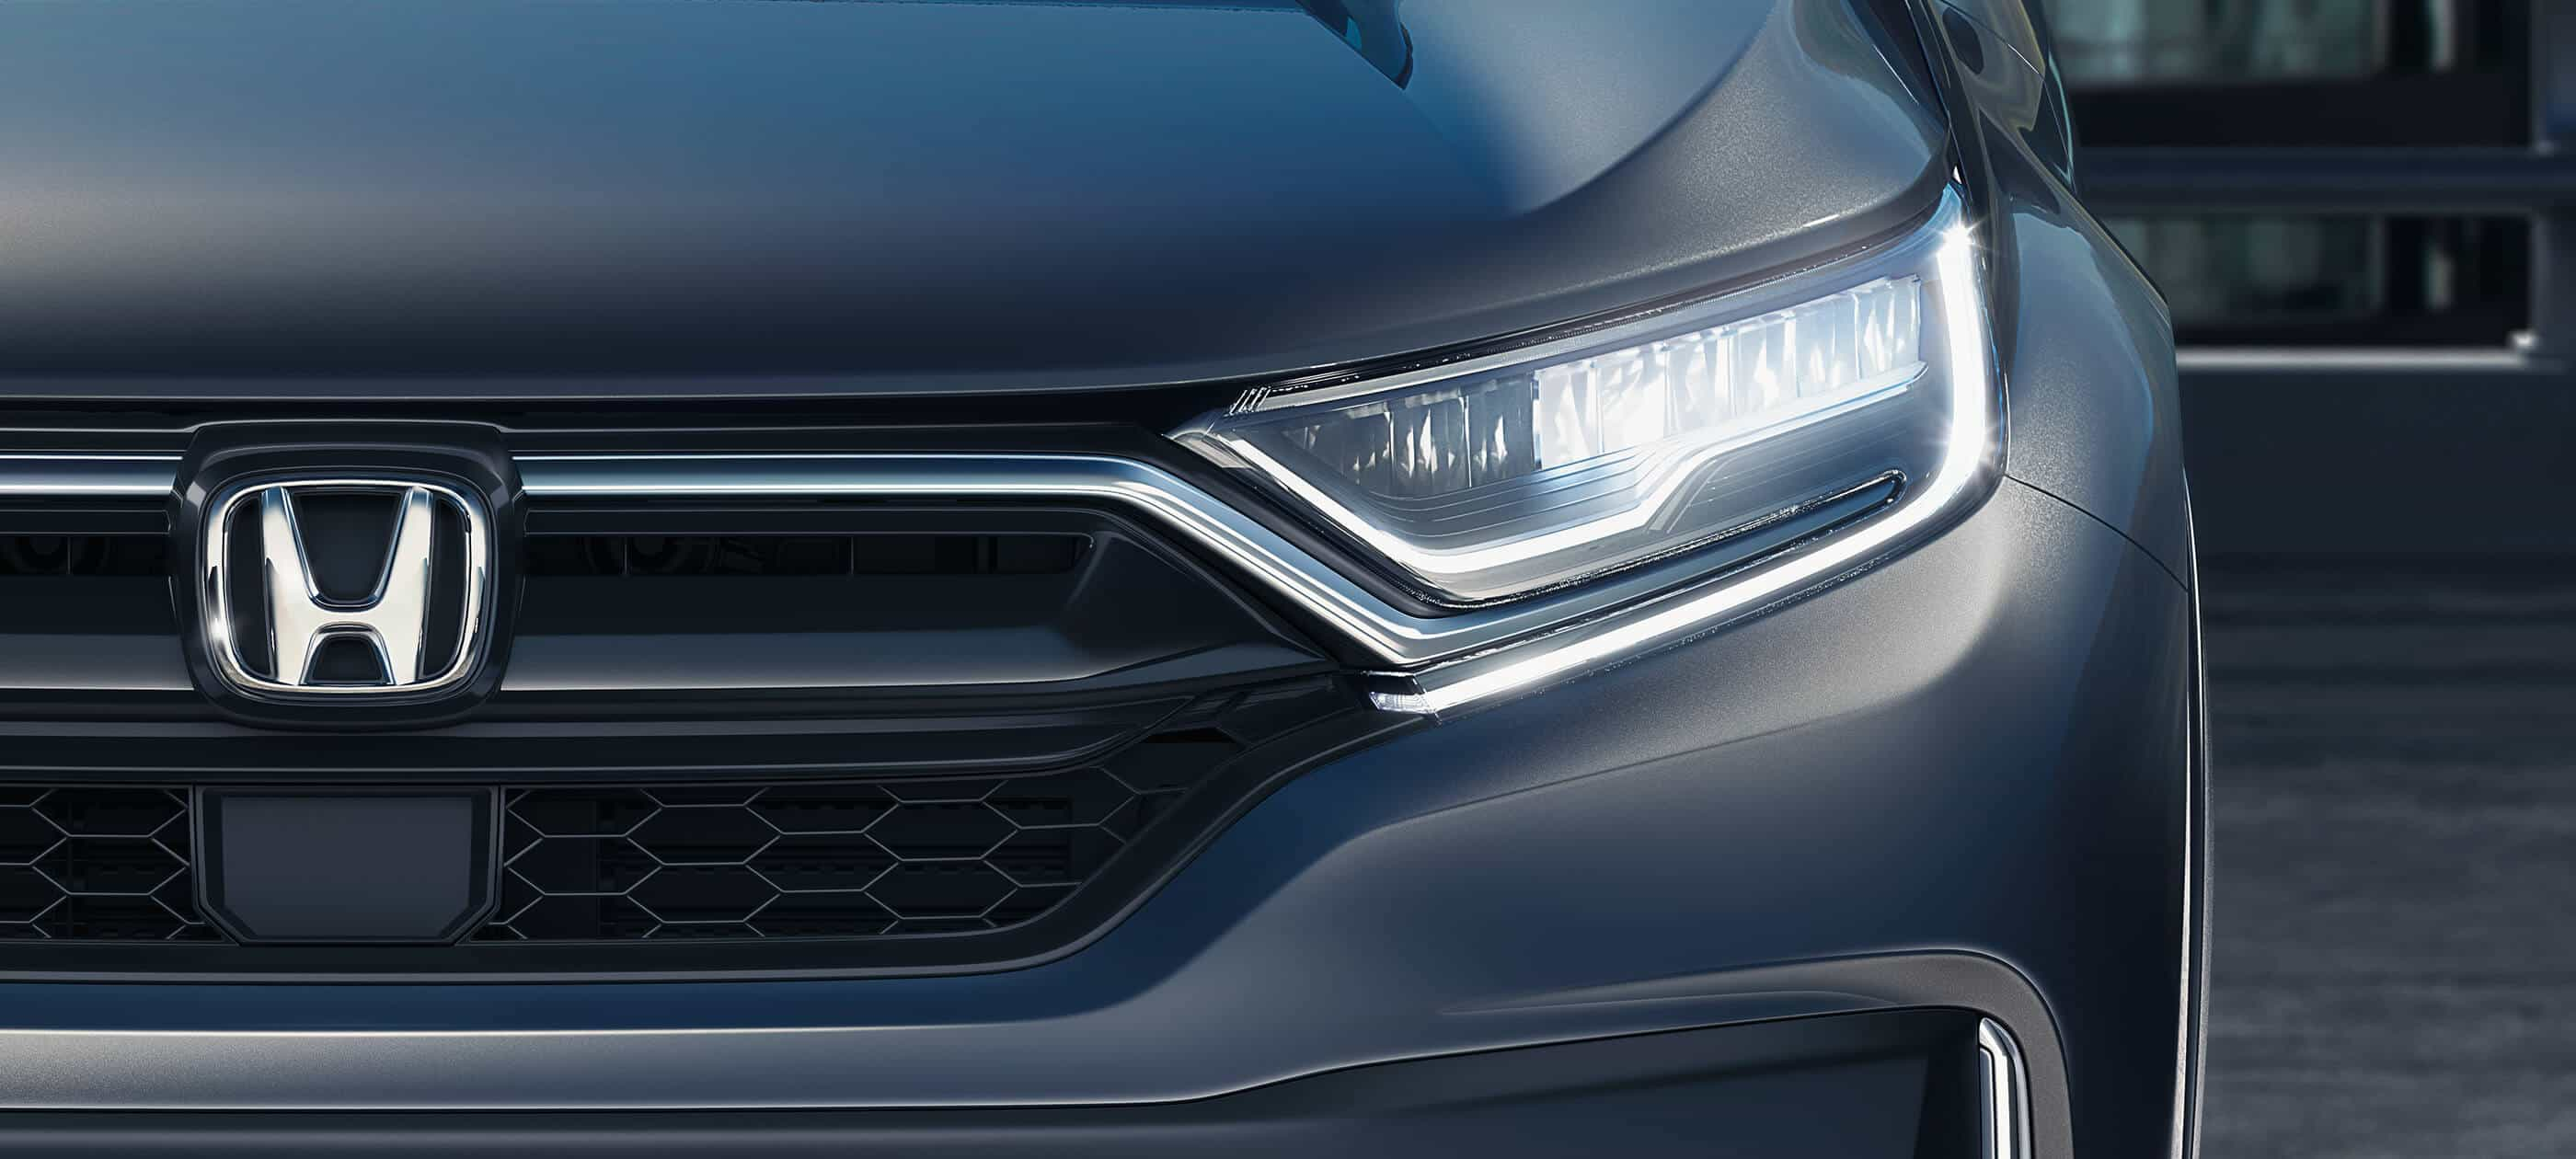 LED Headlights with Auto-On/Off